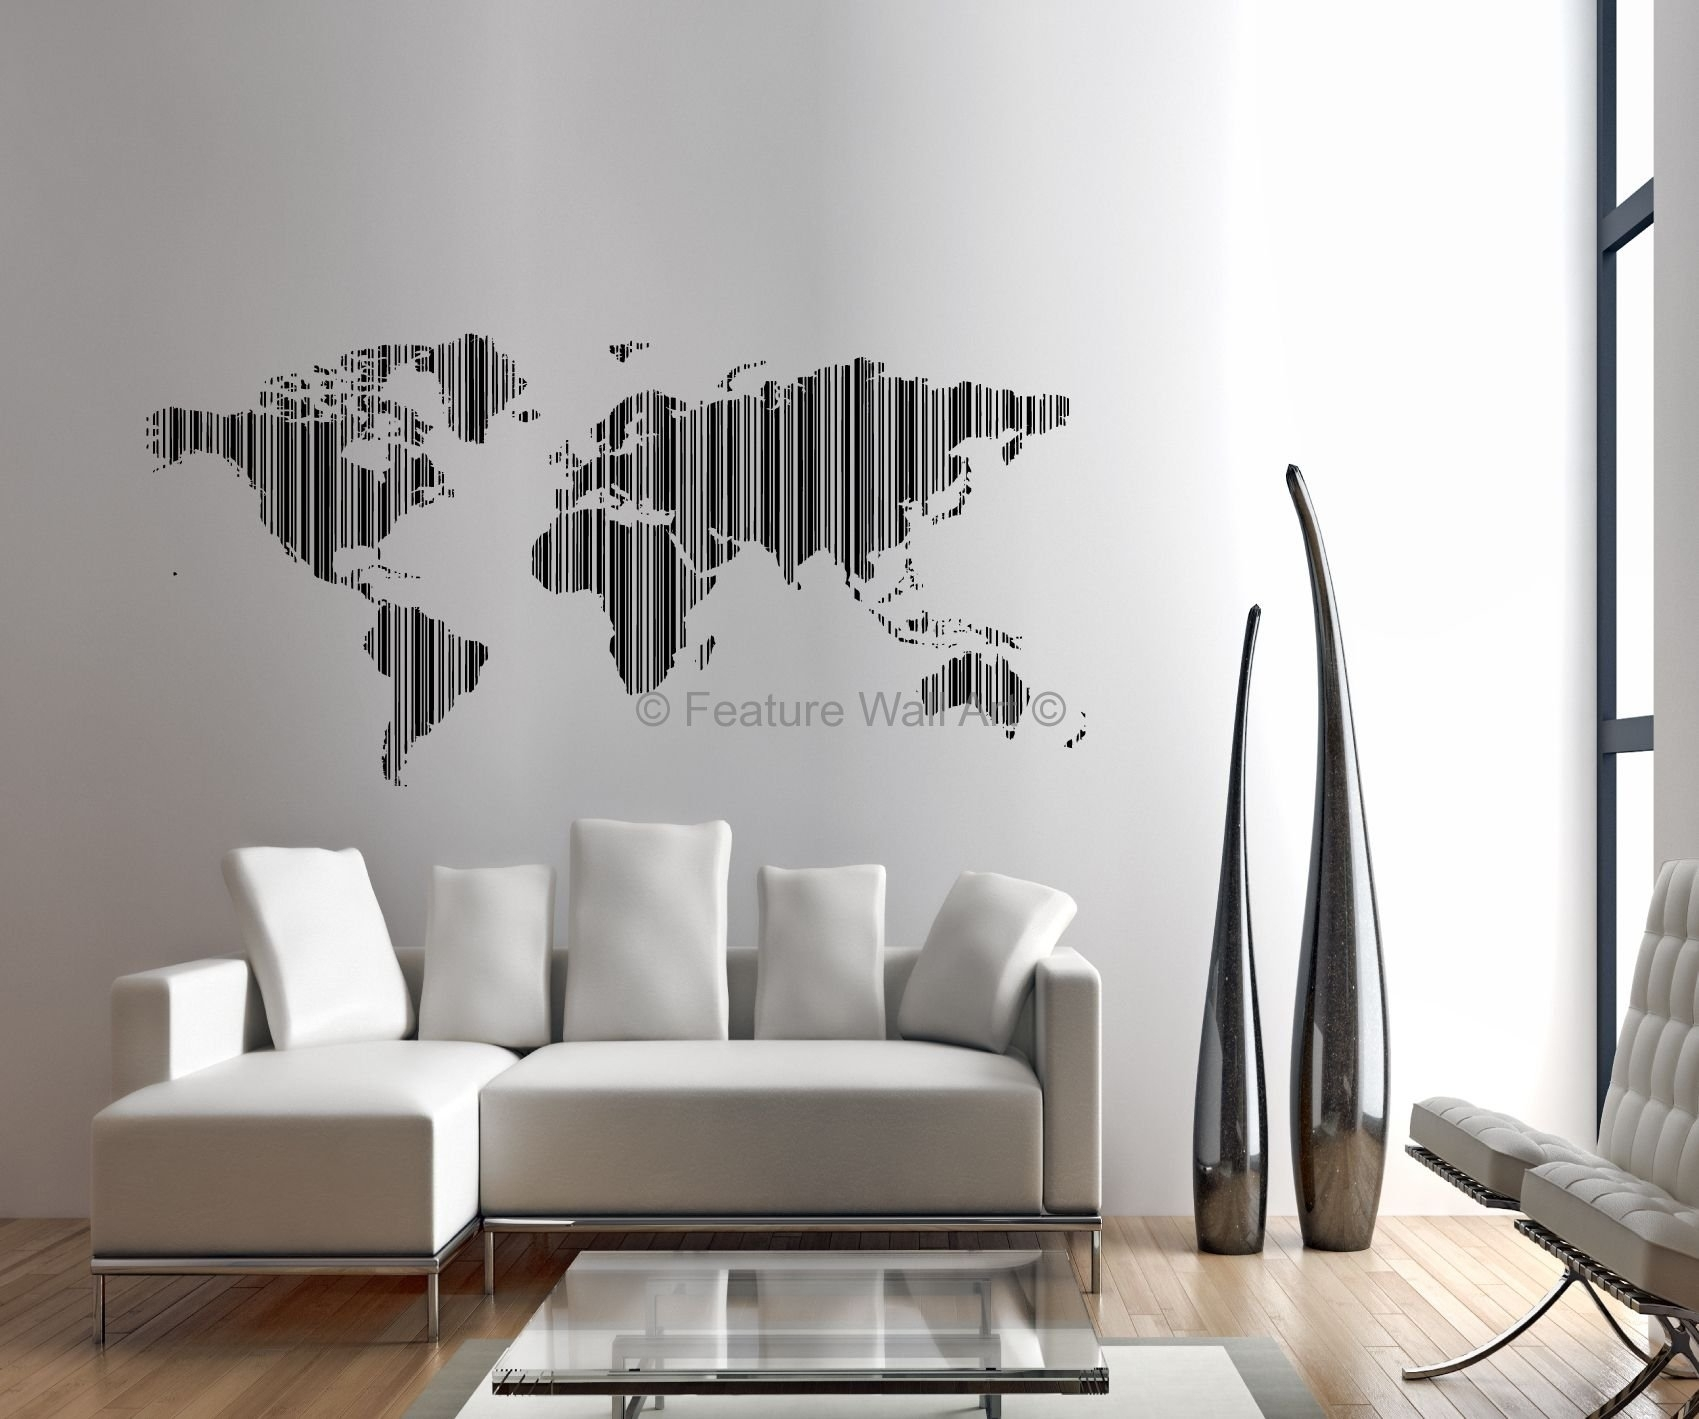 Wall Art Designs: Awesome Wall Art Photo Prints Pictures Made Into With Best And Newest Wall Art Fabric Prints (View 15 of 15)